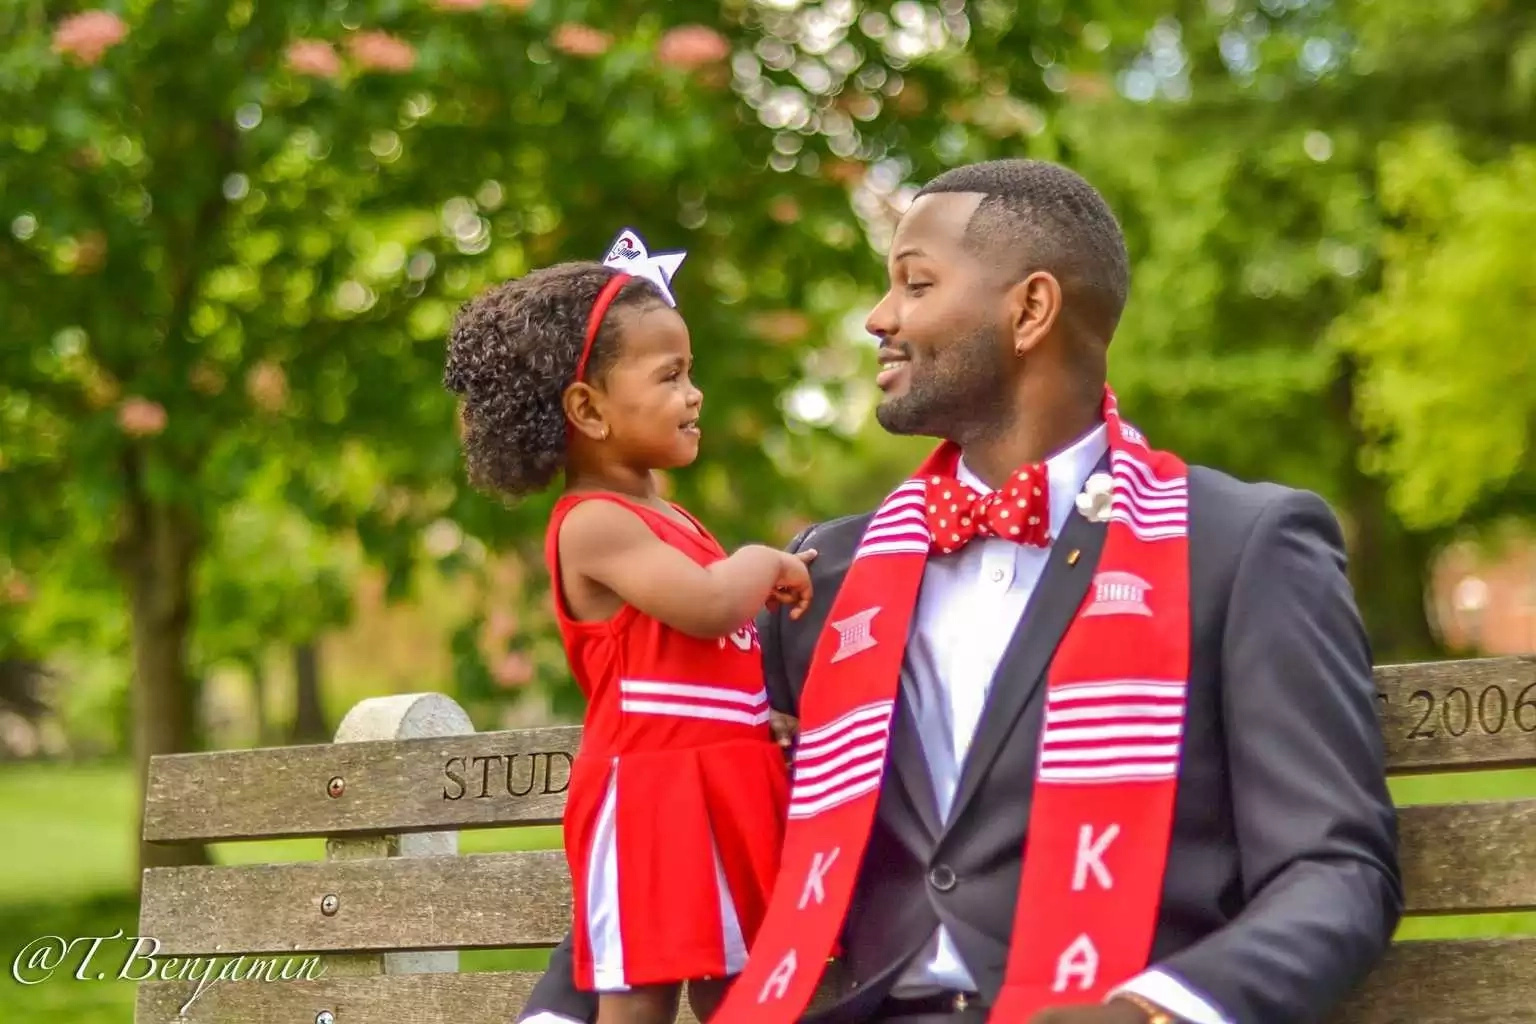 The story behind this adorable father-daughter photoshoot will warm your heart